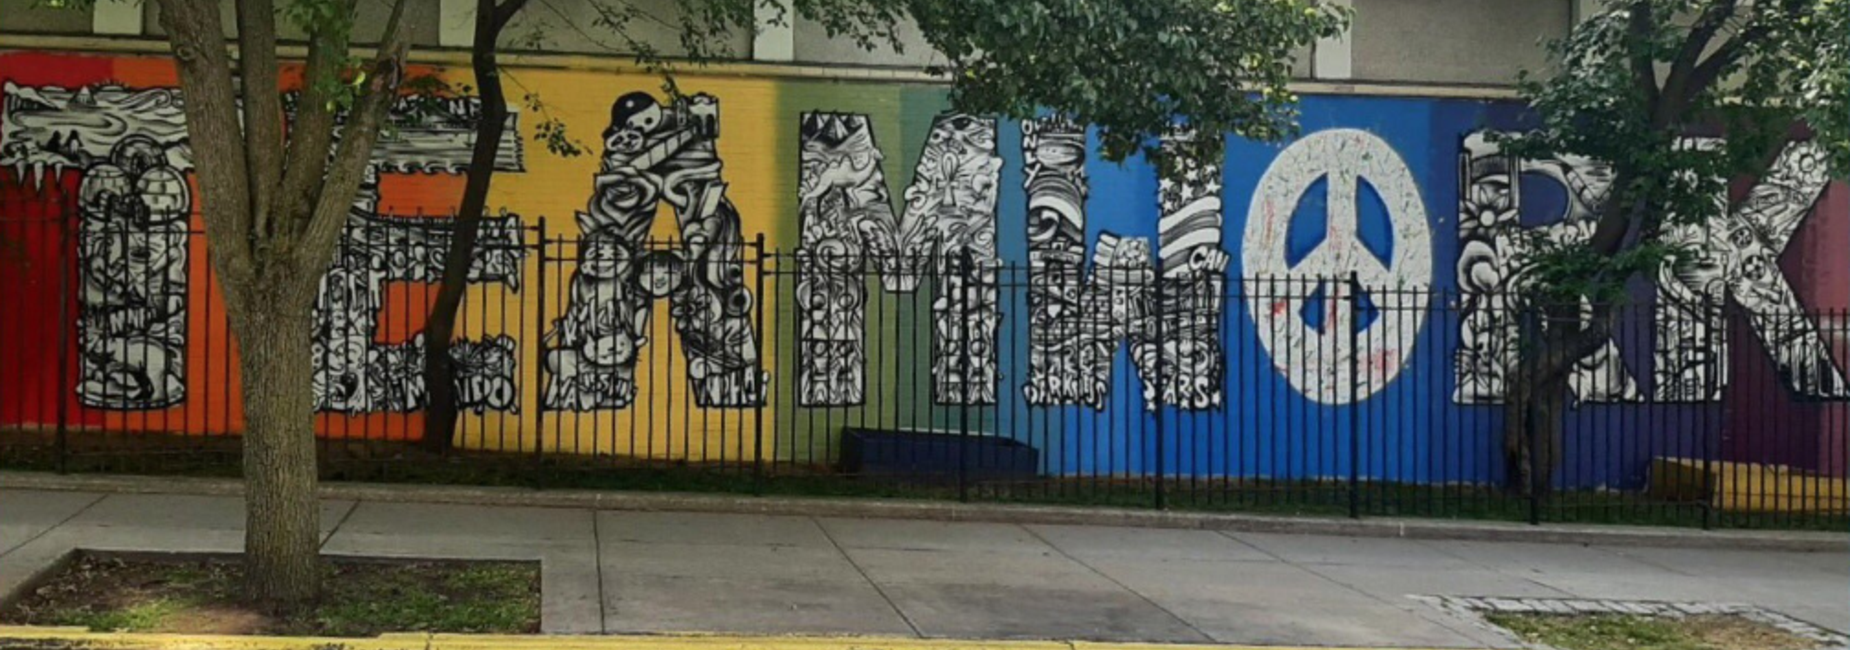 Rainbow Colored Teamwork mural outside of P.S. 16 painted on the wall.